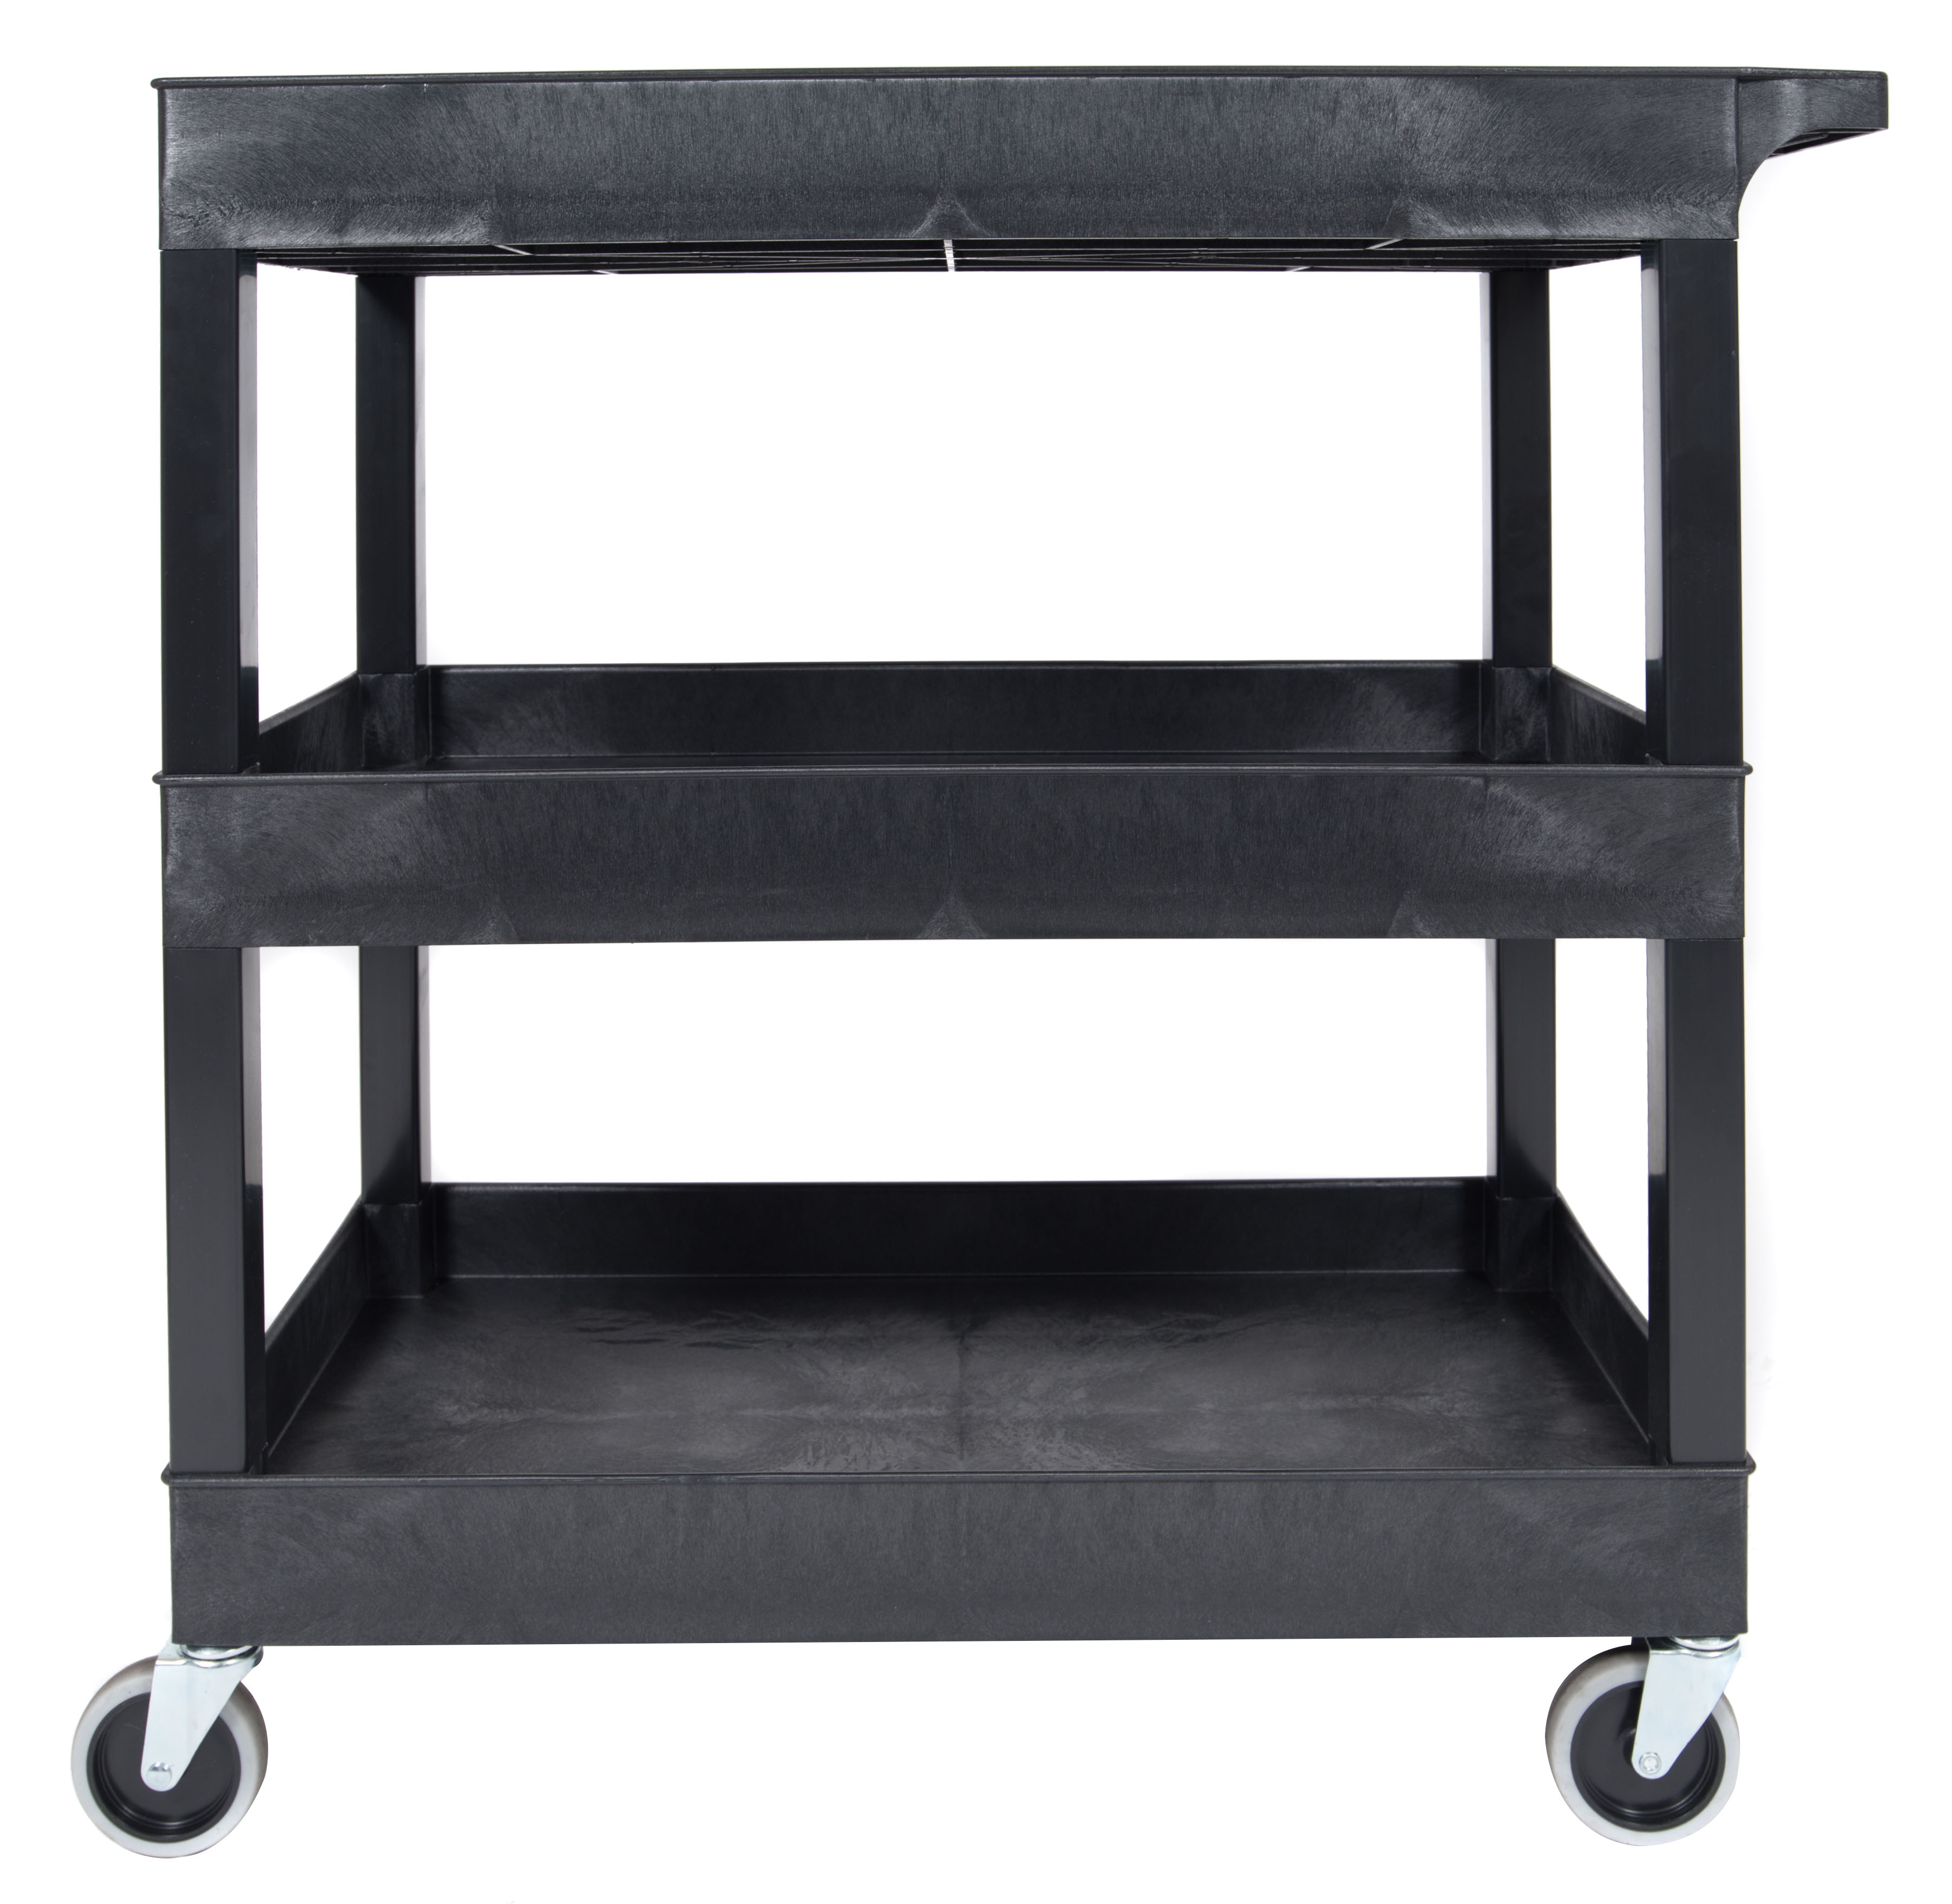 Luxor EC111-B Tub Storage Cart 3 Shelves Black,32 x 18